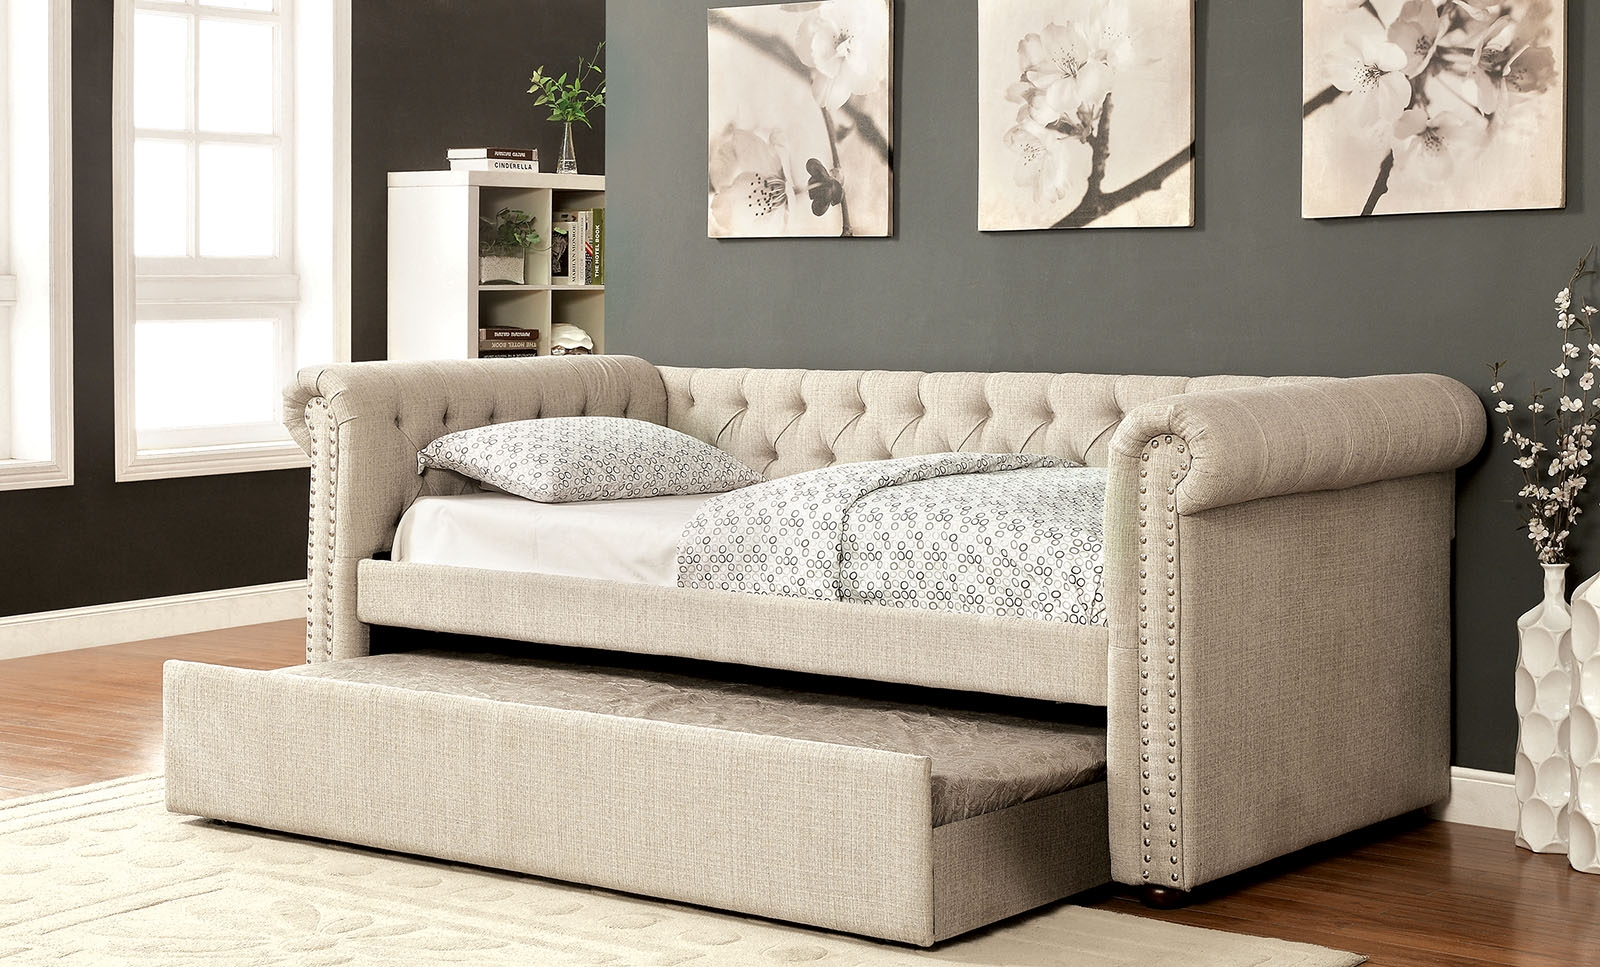 - Leanna Queen Size Tufted Upholstered Daybed With Rolled Arms